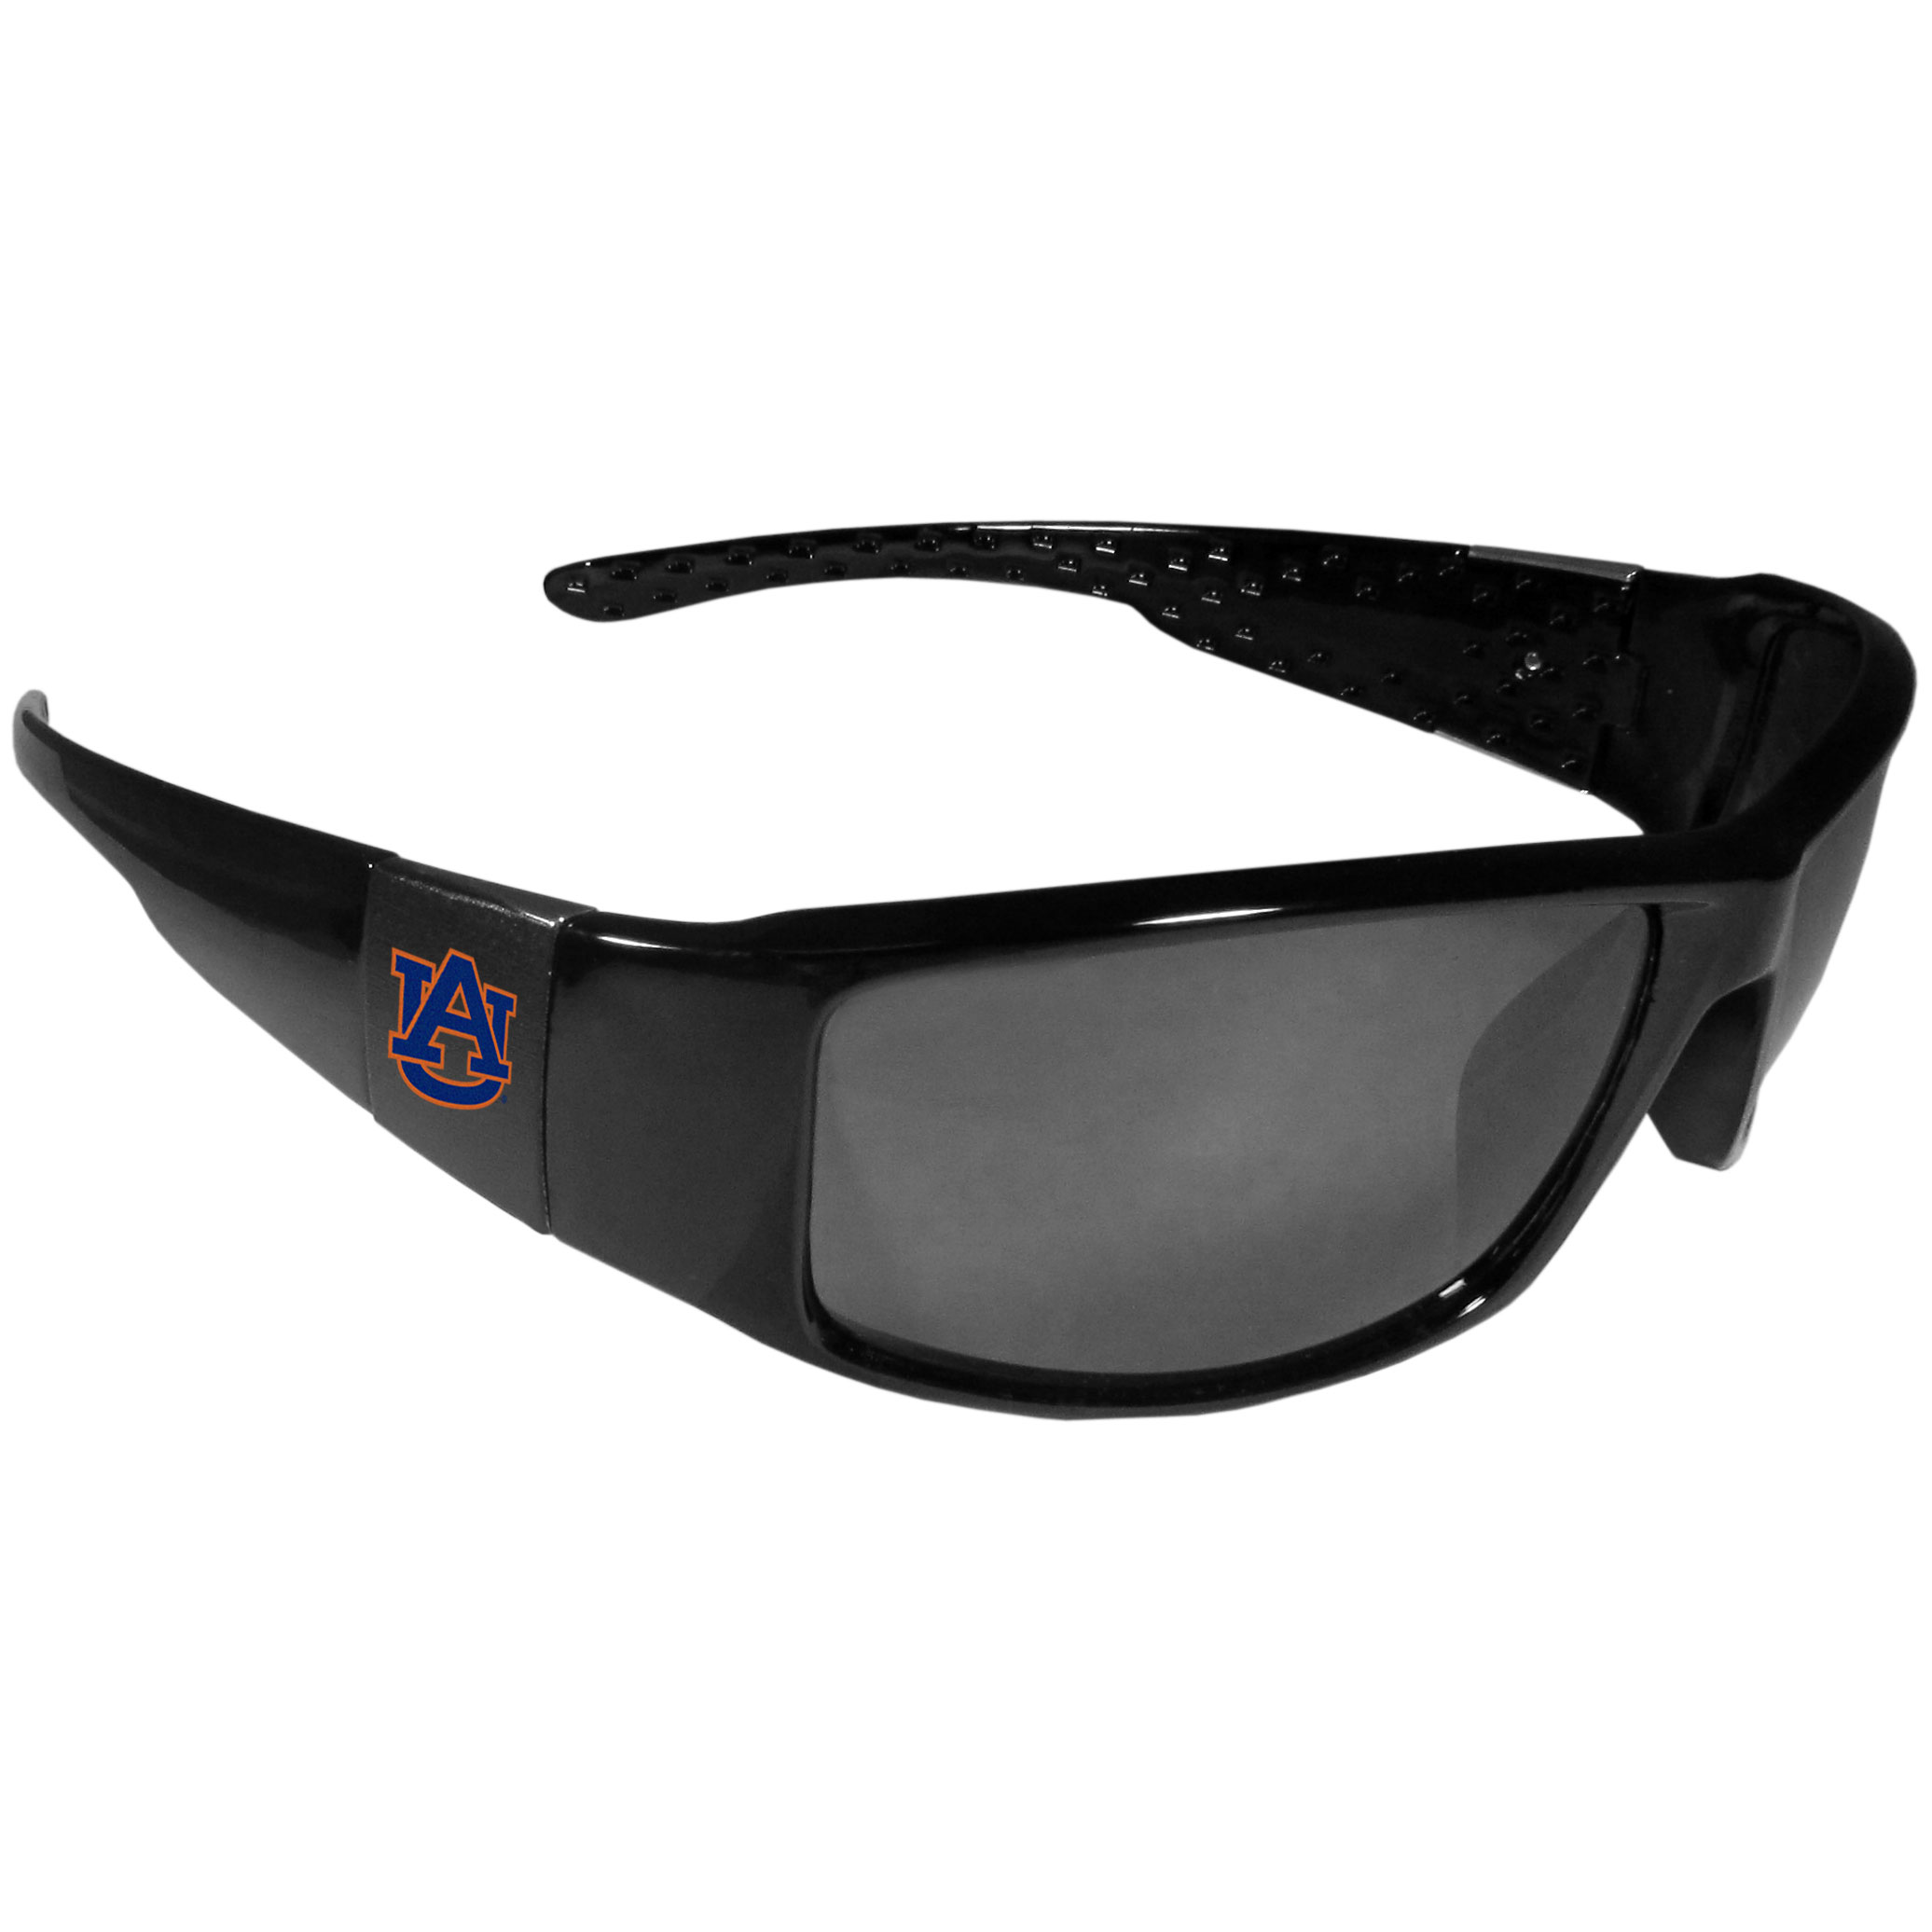 Auburn Tigers Black Wrap Sunglasses - These designer inspired frames have a sleek look in all black with  Auburn Tigers shields on each arm with a printed logo. The shades are perfect for any outdoor activity like; golfing, driving, hiking, fishing or cheering on the team at a tailgating event or at a home game day BBQ with a lens rating of 100% UVA/UVB for maximum UV protection. The high-quality frames are as durable as they are fashionable and with their classic look they are the perfect fan accessory that can be worn everyday for every occasion.